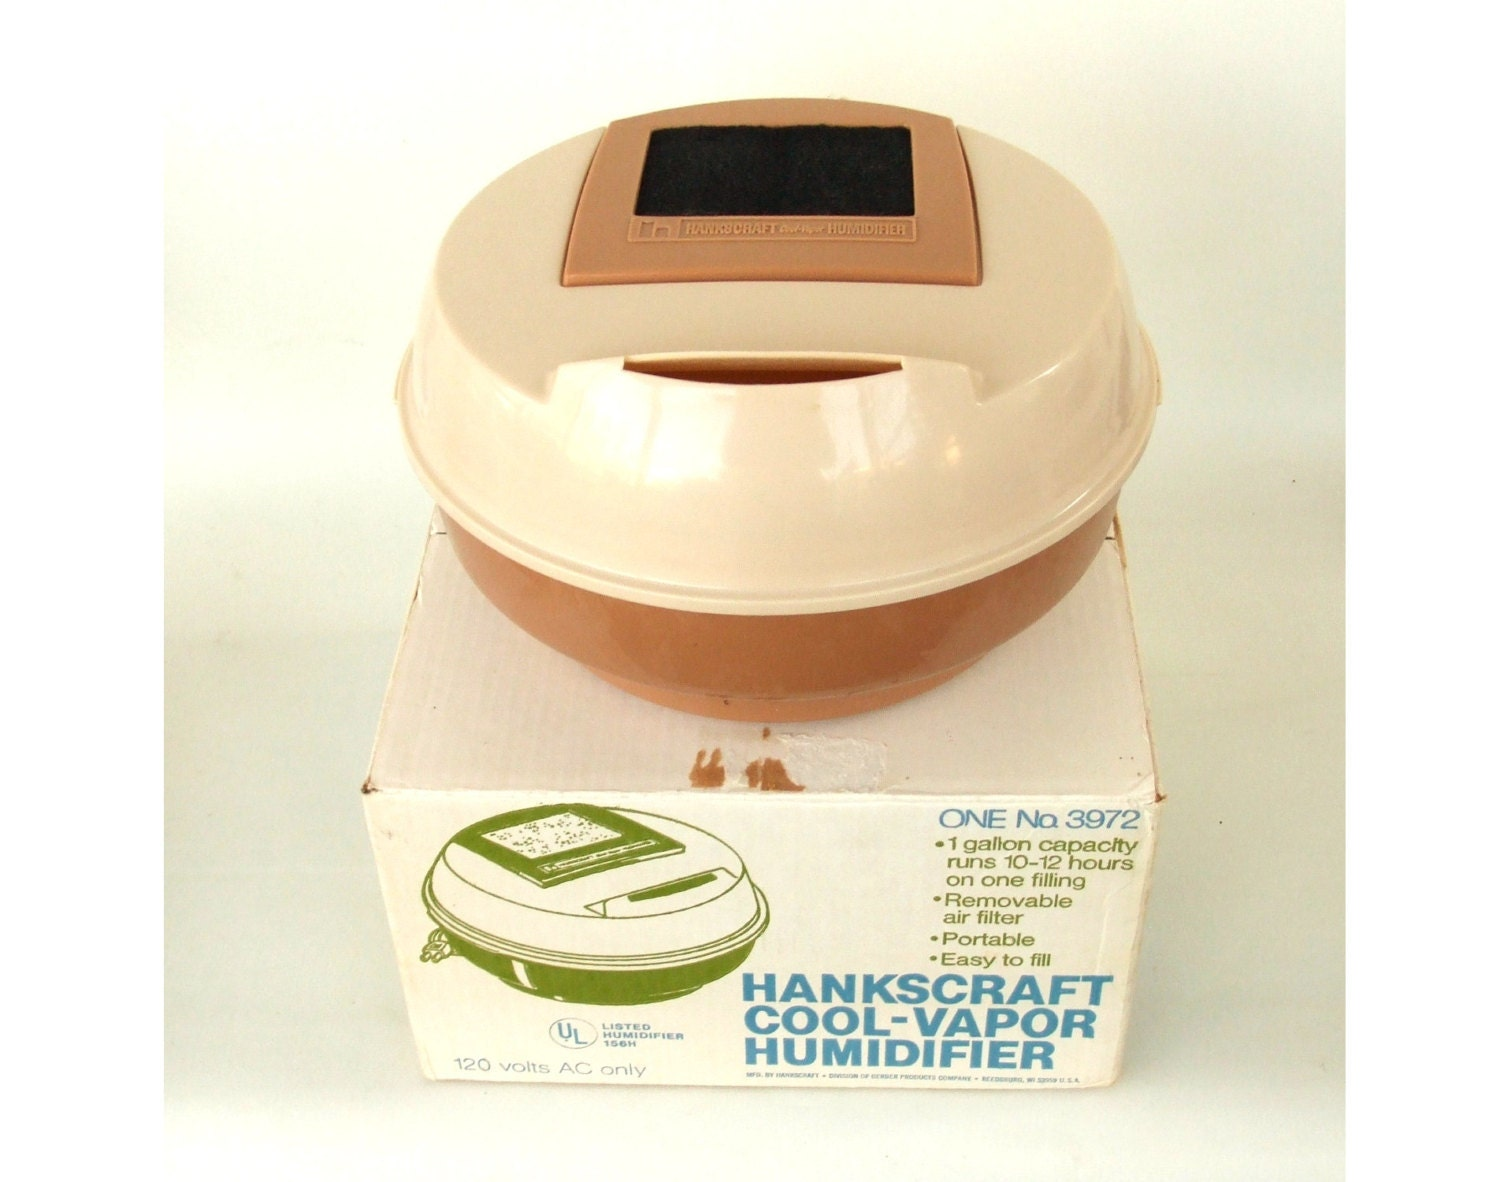 Hankscraft Cool Vapor Humidifier 3972 Used by LaurasLastDitch #753518